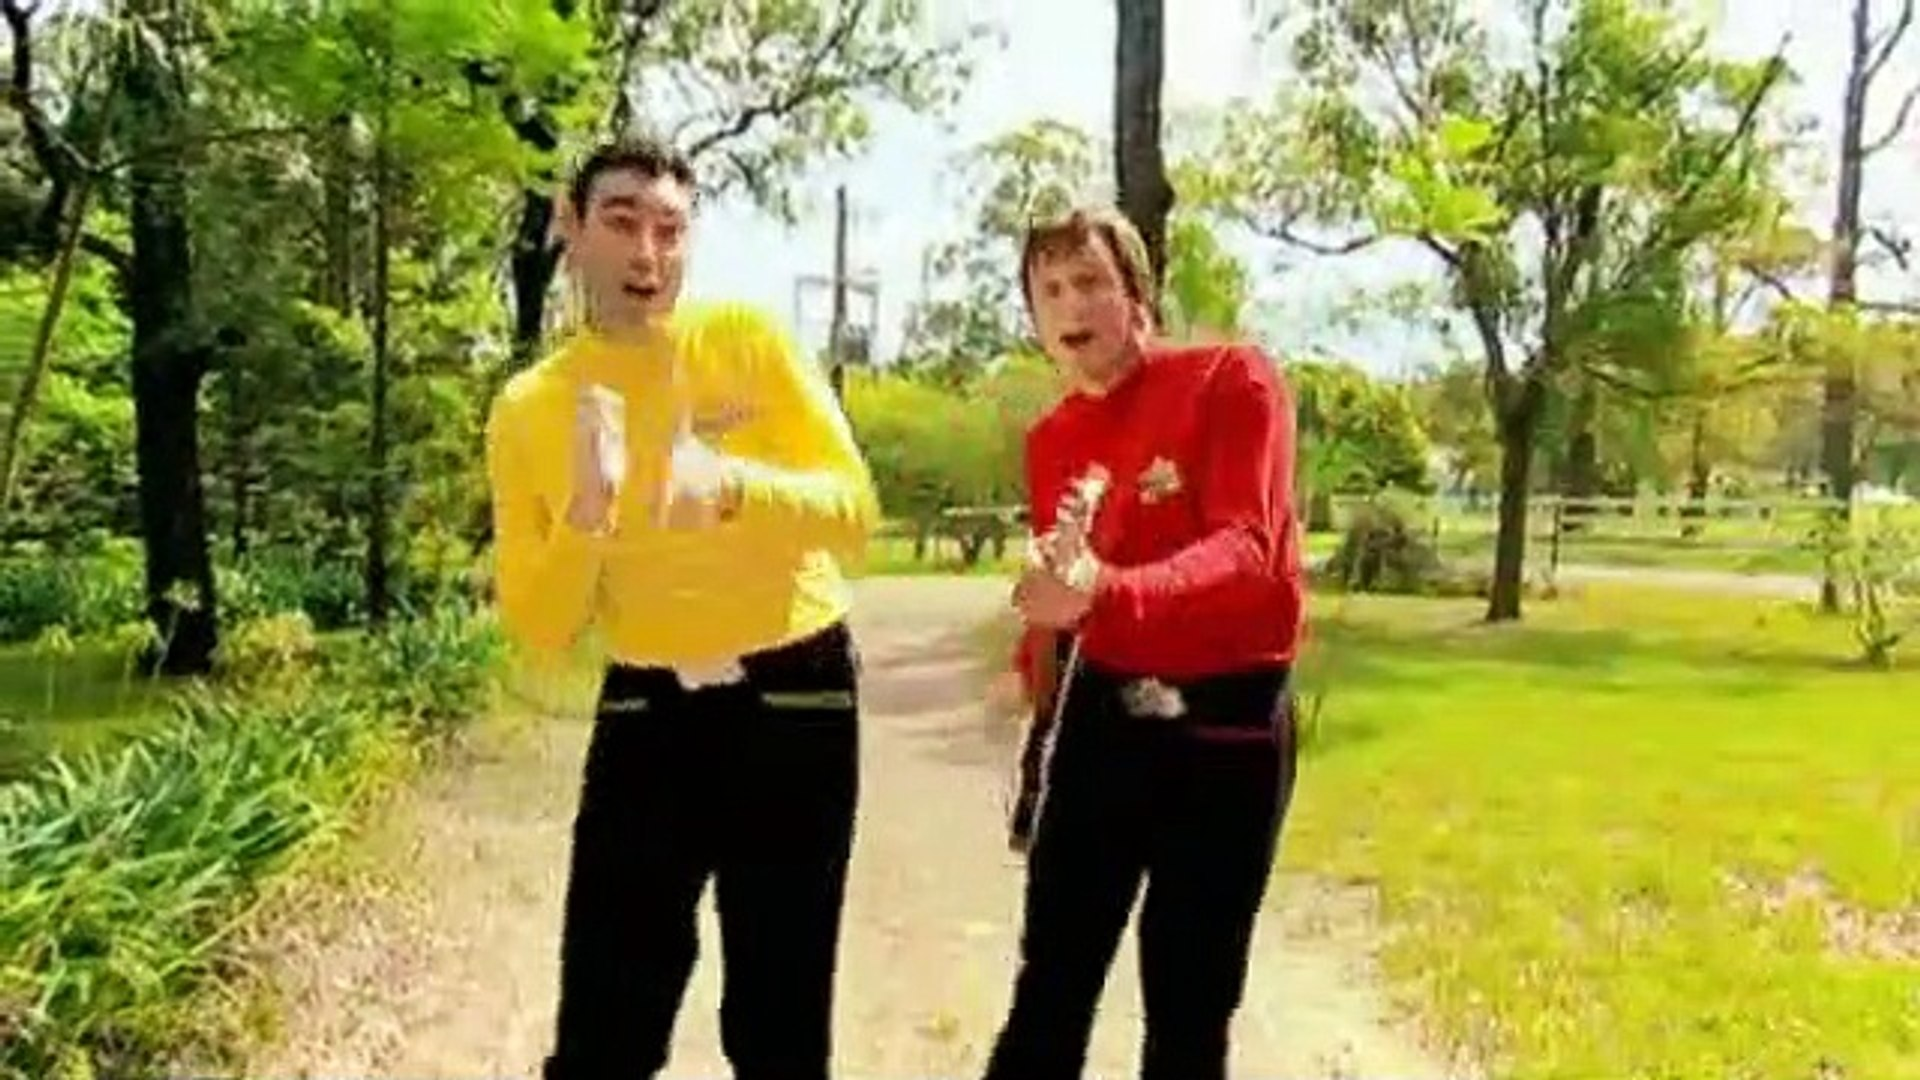 The Wiggles Show Episode 23 - I Count 1-10